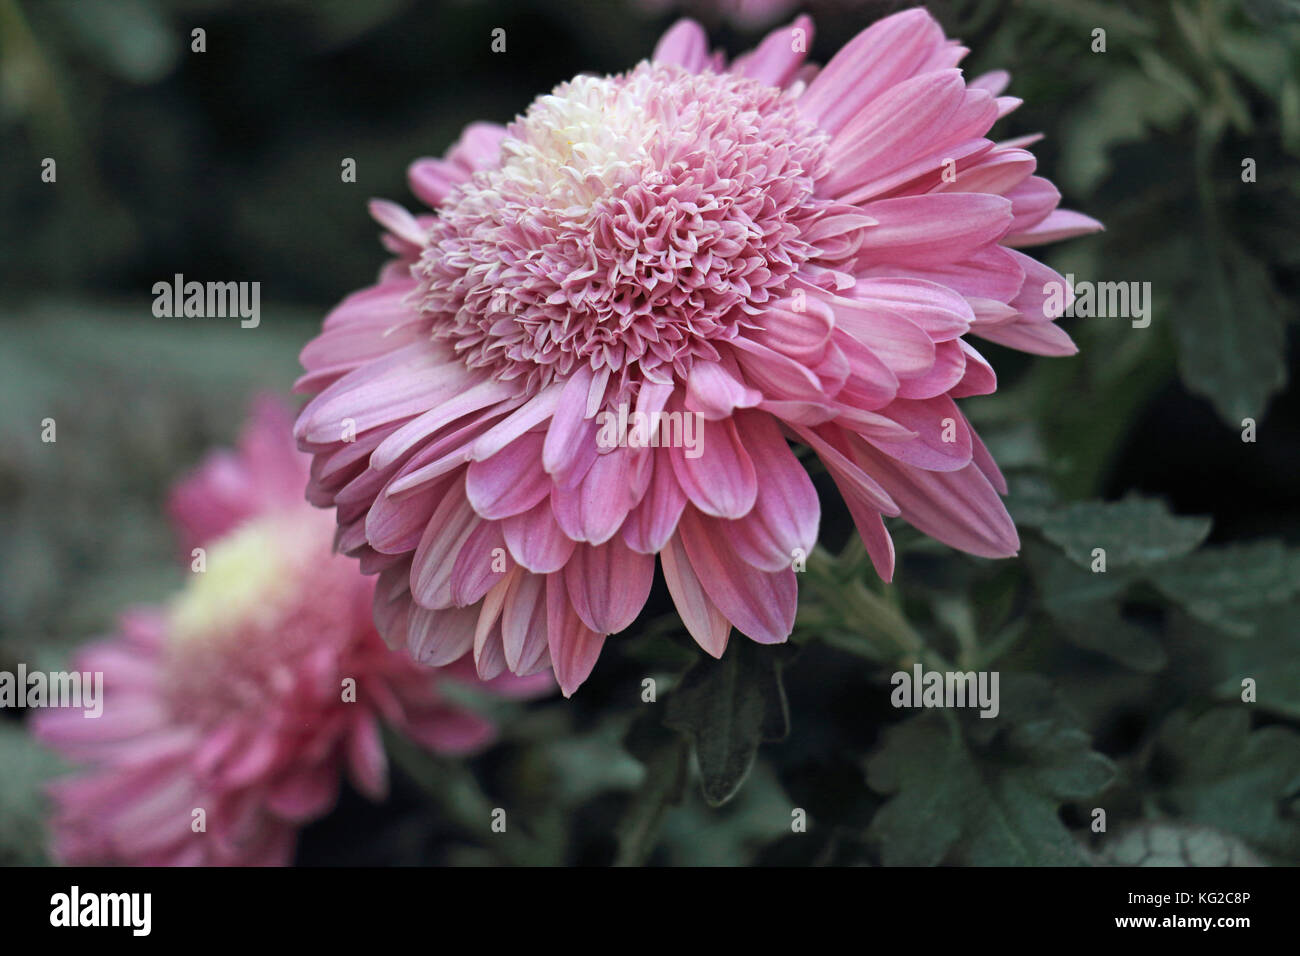 This Bright Pink Cushion Mum Shows Two Different Types Of Petals On